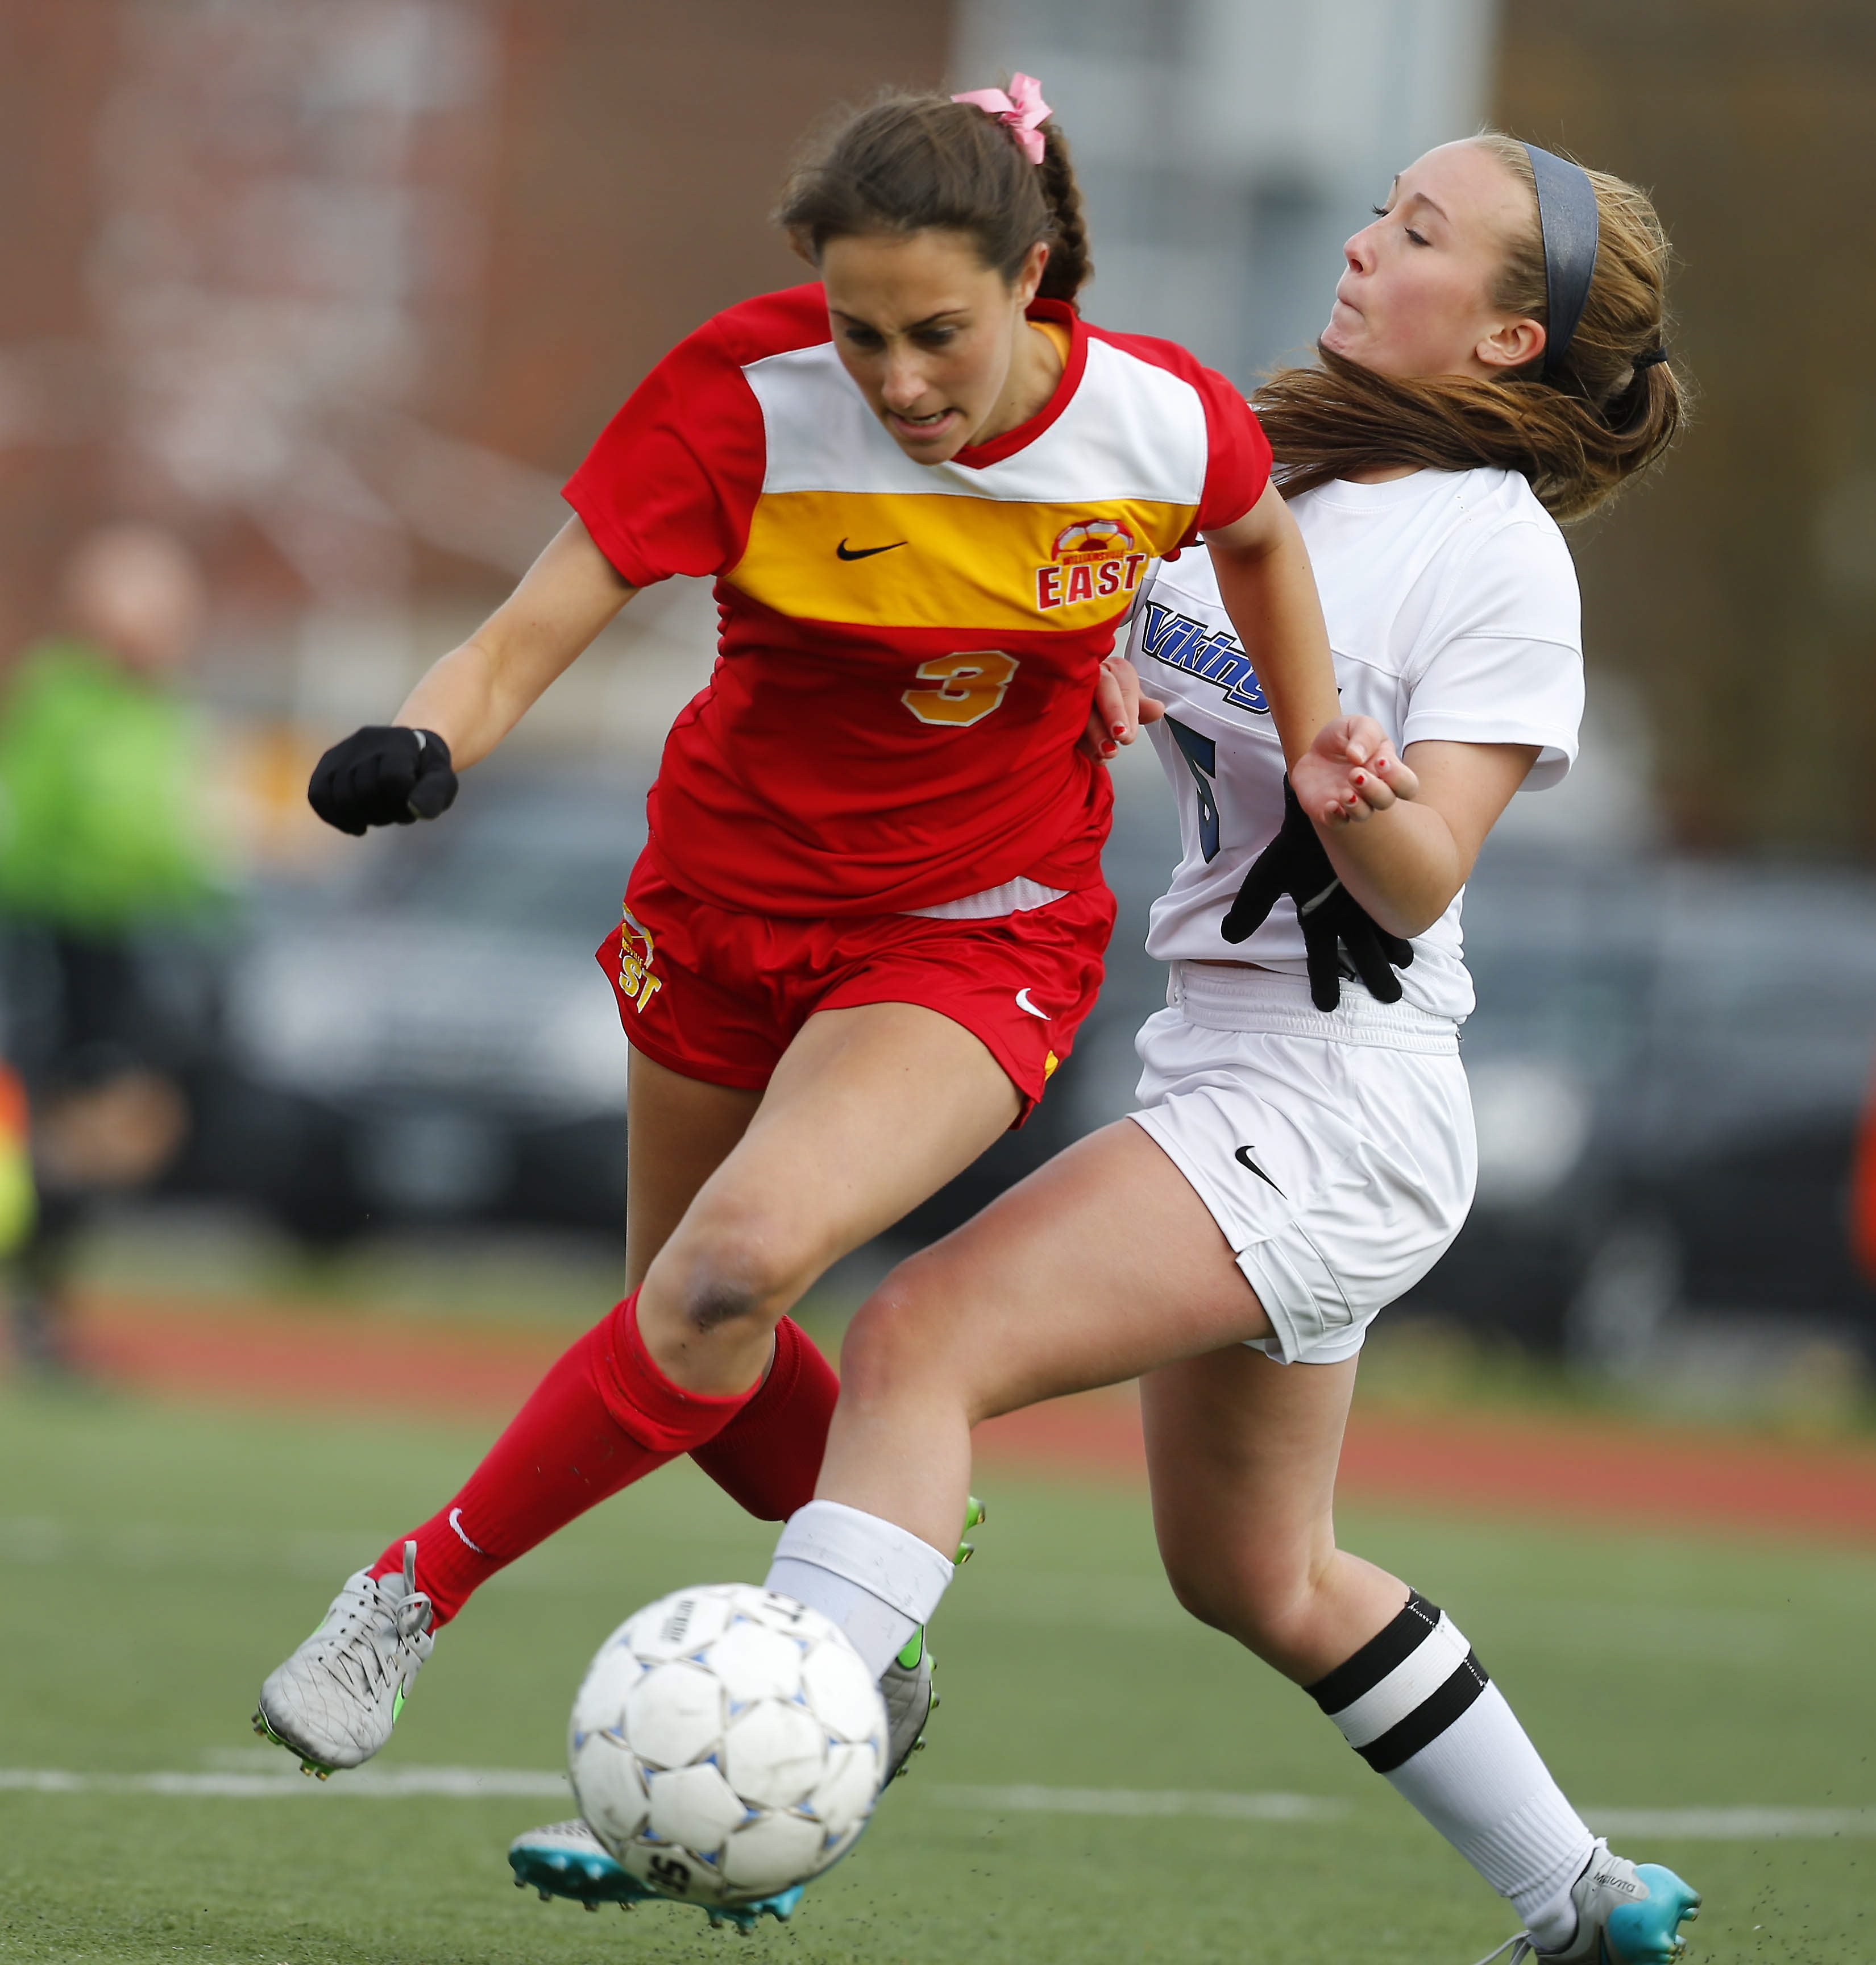 Williamsville East's Marissa Birzon in action during the 2015 Section VI Class A final.  (Mark Mulville/Buffalo News)